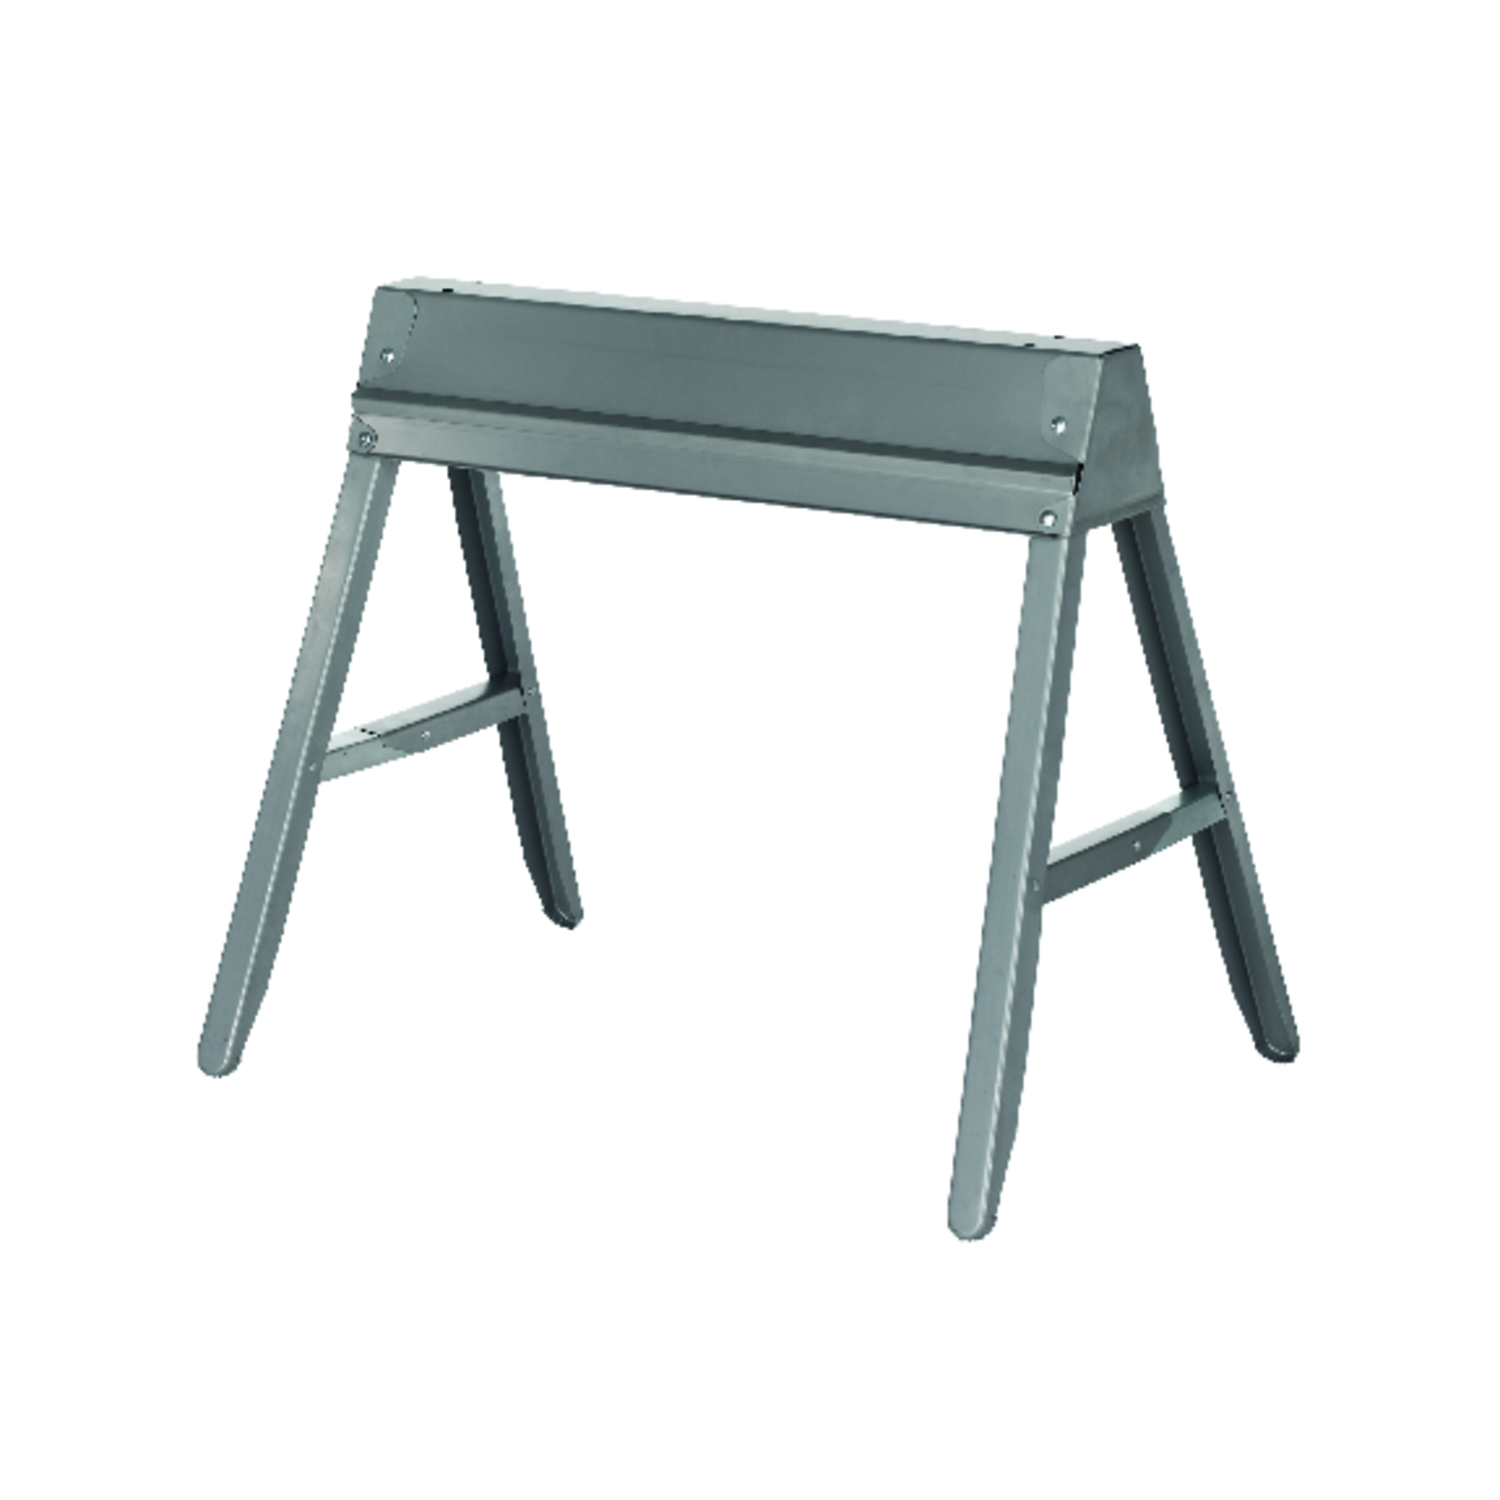 Fulton  Handy Horse  29-1/4 in. H x 32-1/2 in. W Adjustable Folding Sawhorse  1000 lb. capacity 1 pk